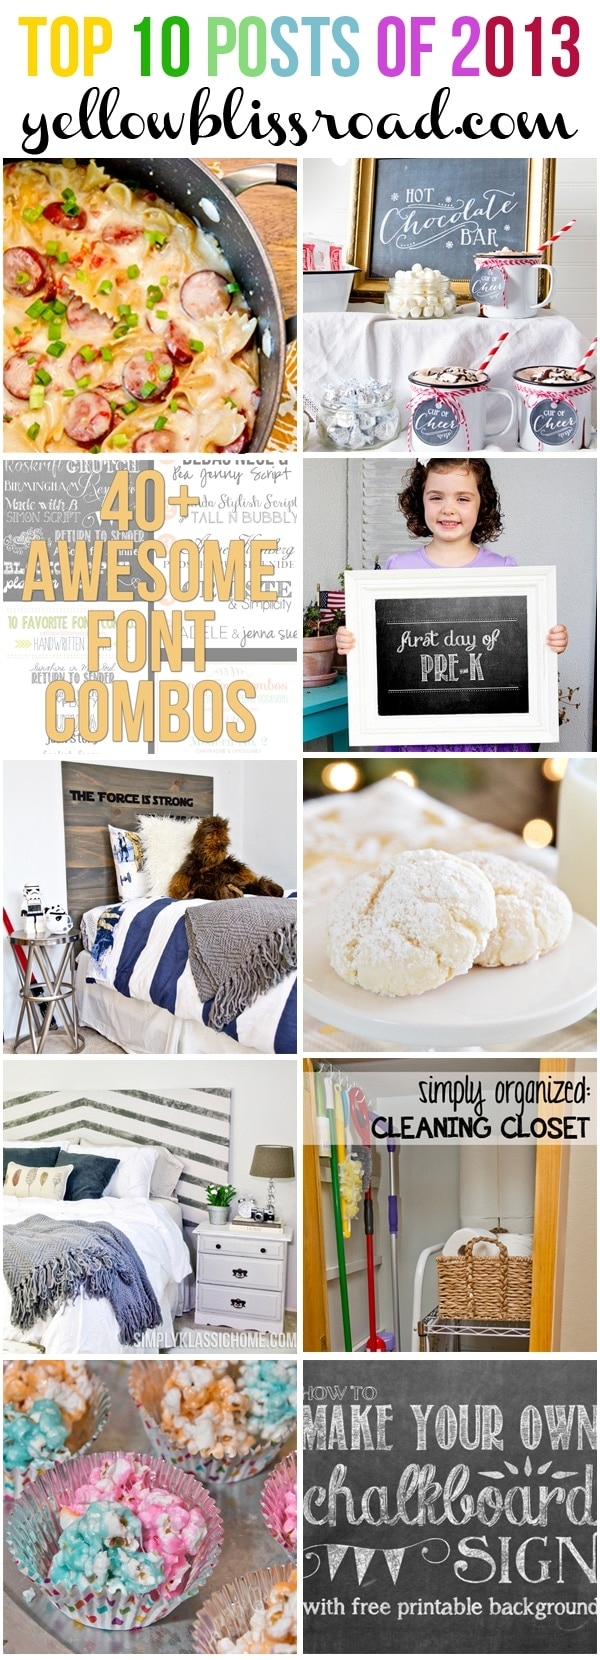 Top Ten Projects, Recipes and Printables from 2013 at Yellow Bliss Road